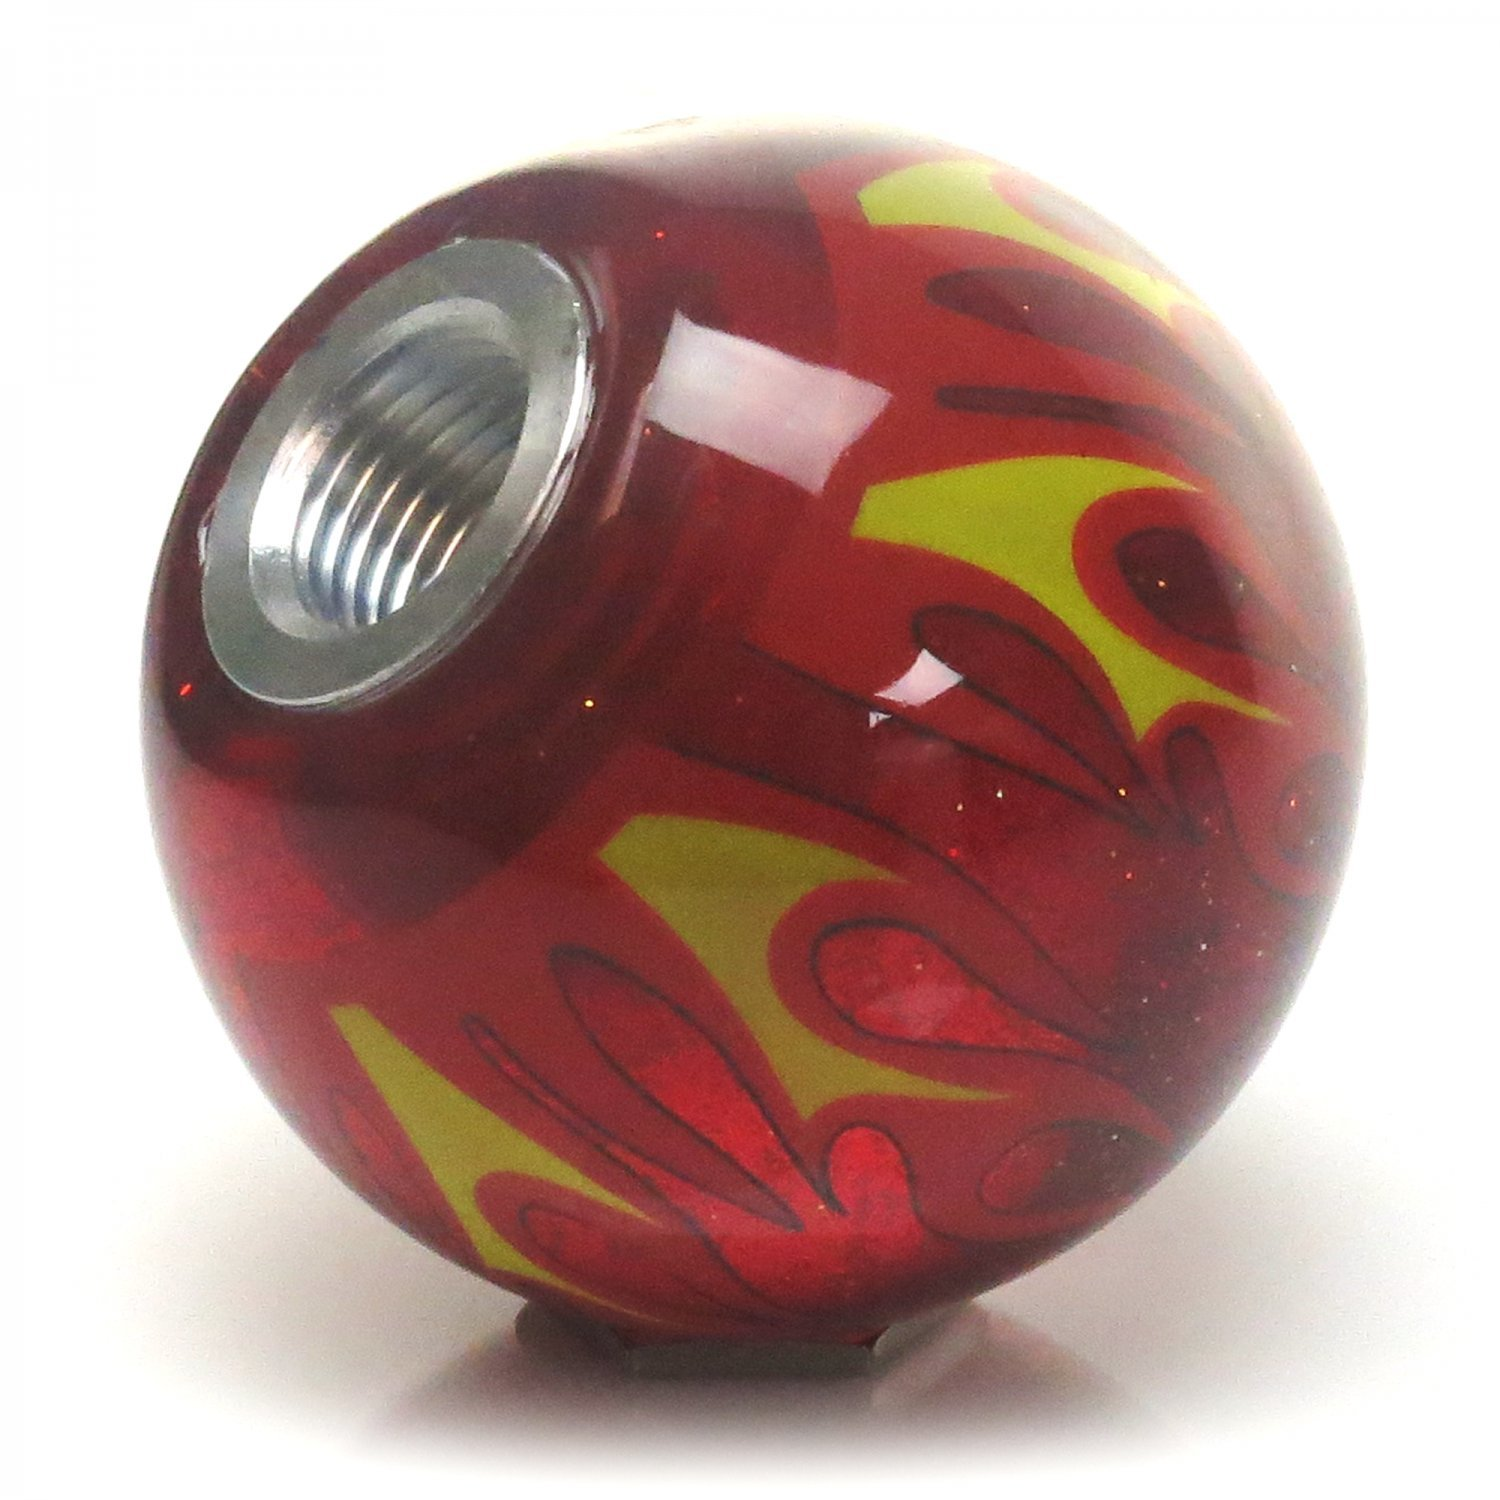 American Shifter 242520 Red Flame Metal Flake Shift Knob with M16 x 1.5 Insert Wheel with Wing